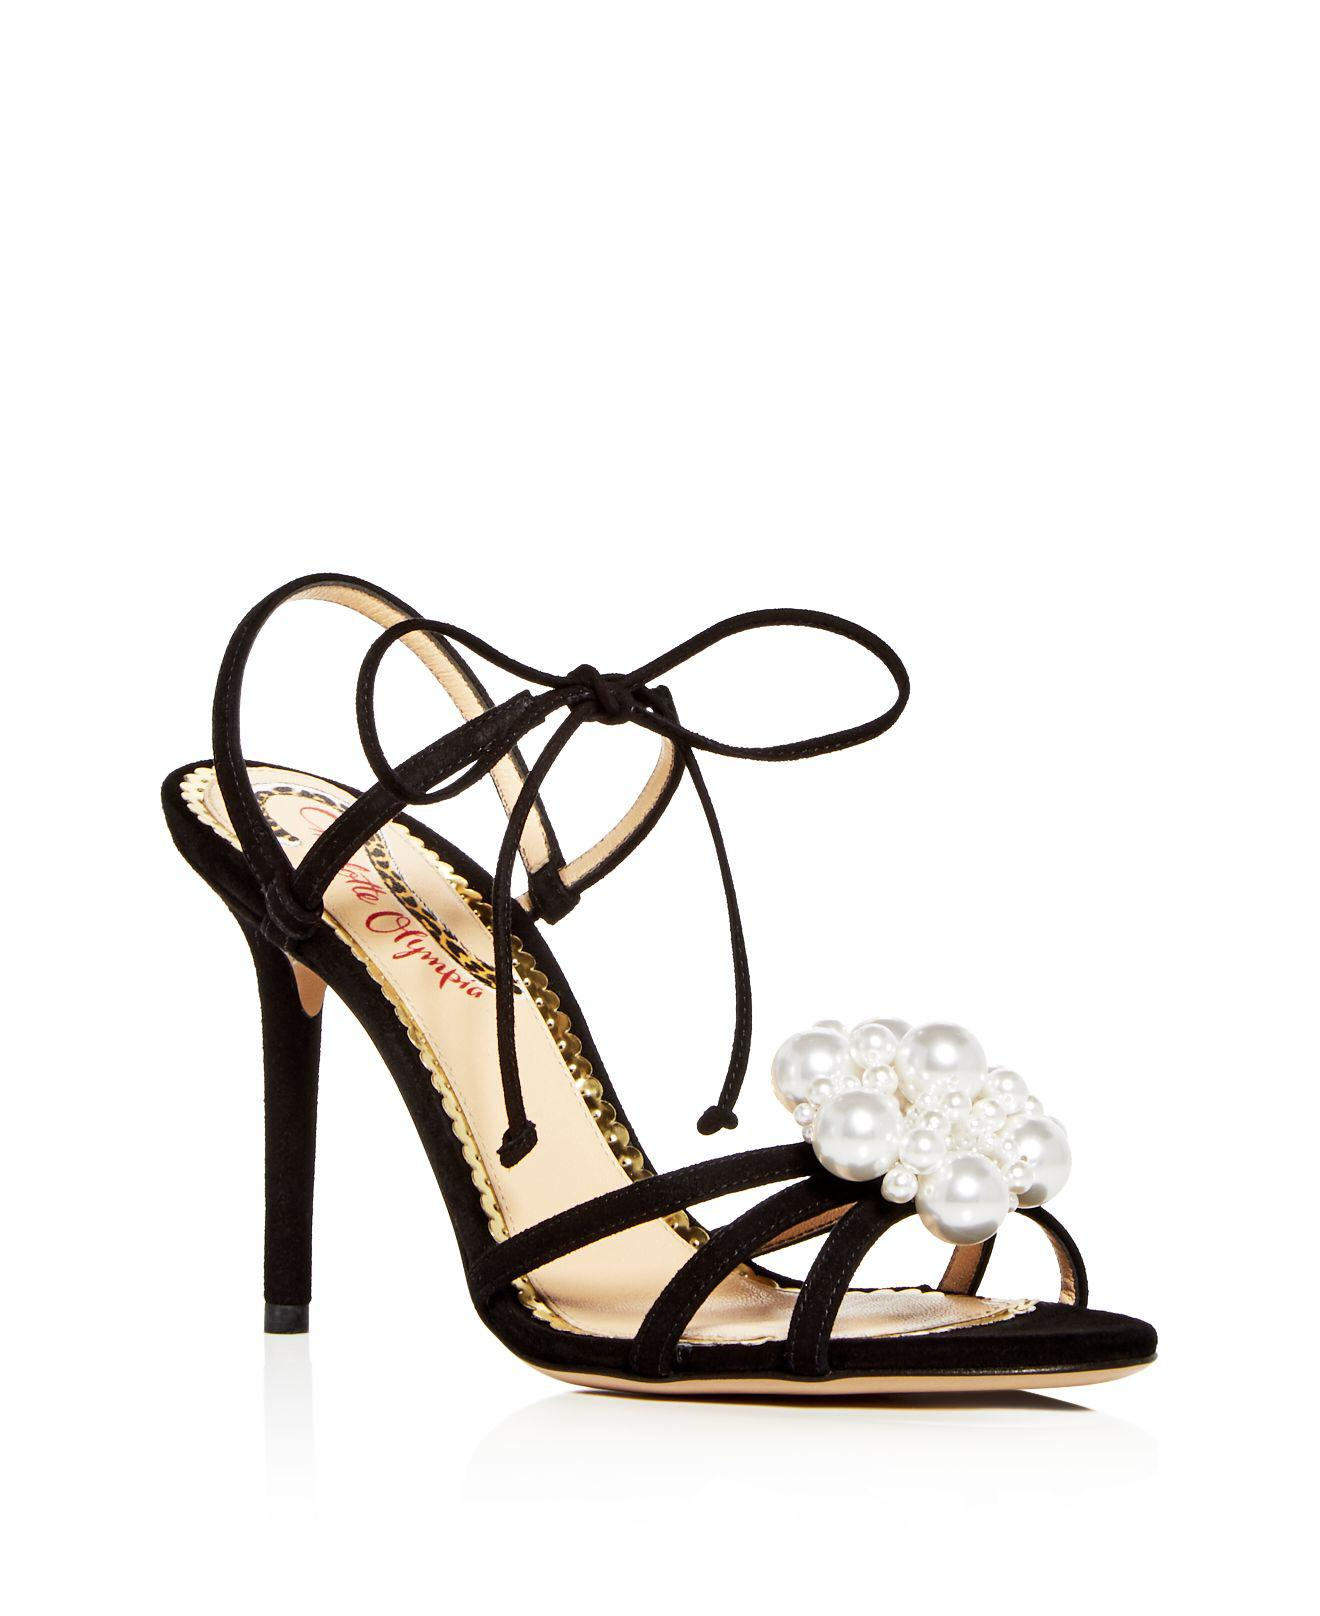 Charlotte Olympia Women's Diva Satin Strappy High-Heel Sandals IKVbdtQVK